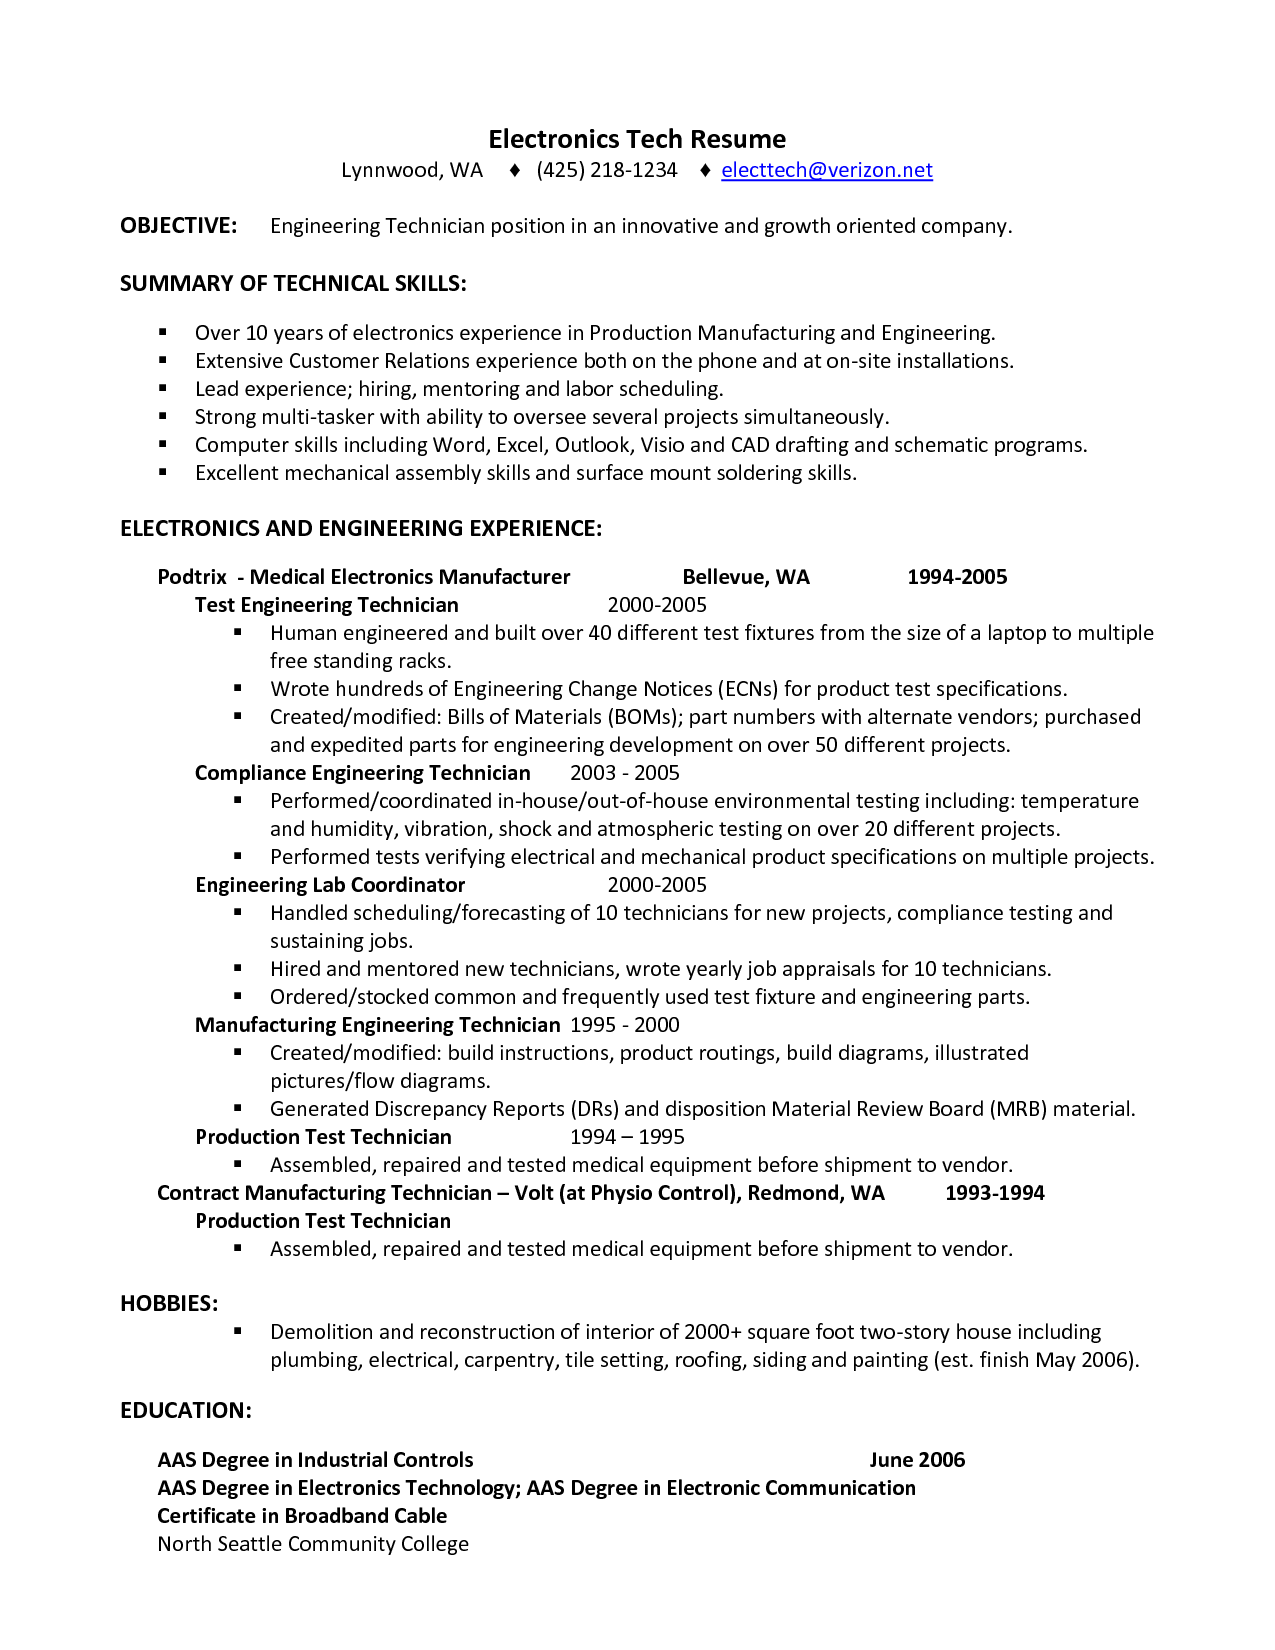 Electronic Assembly Resume